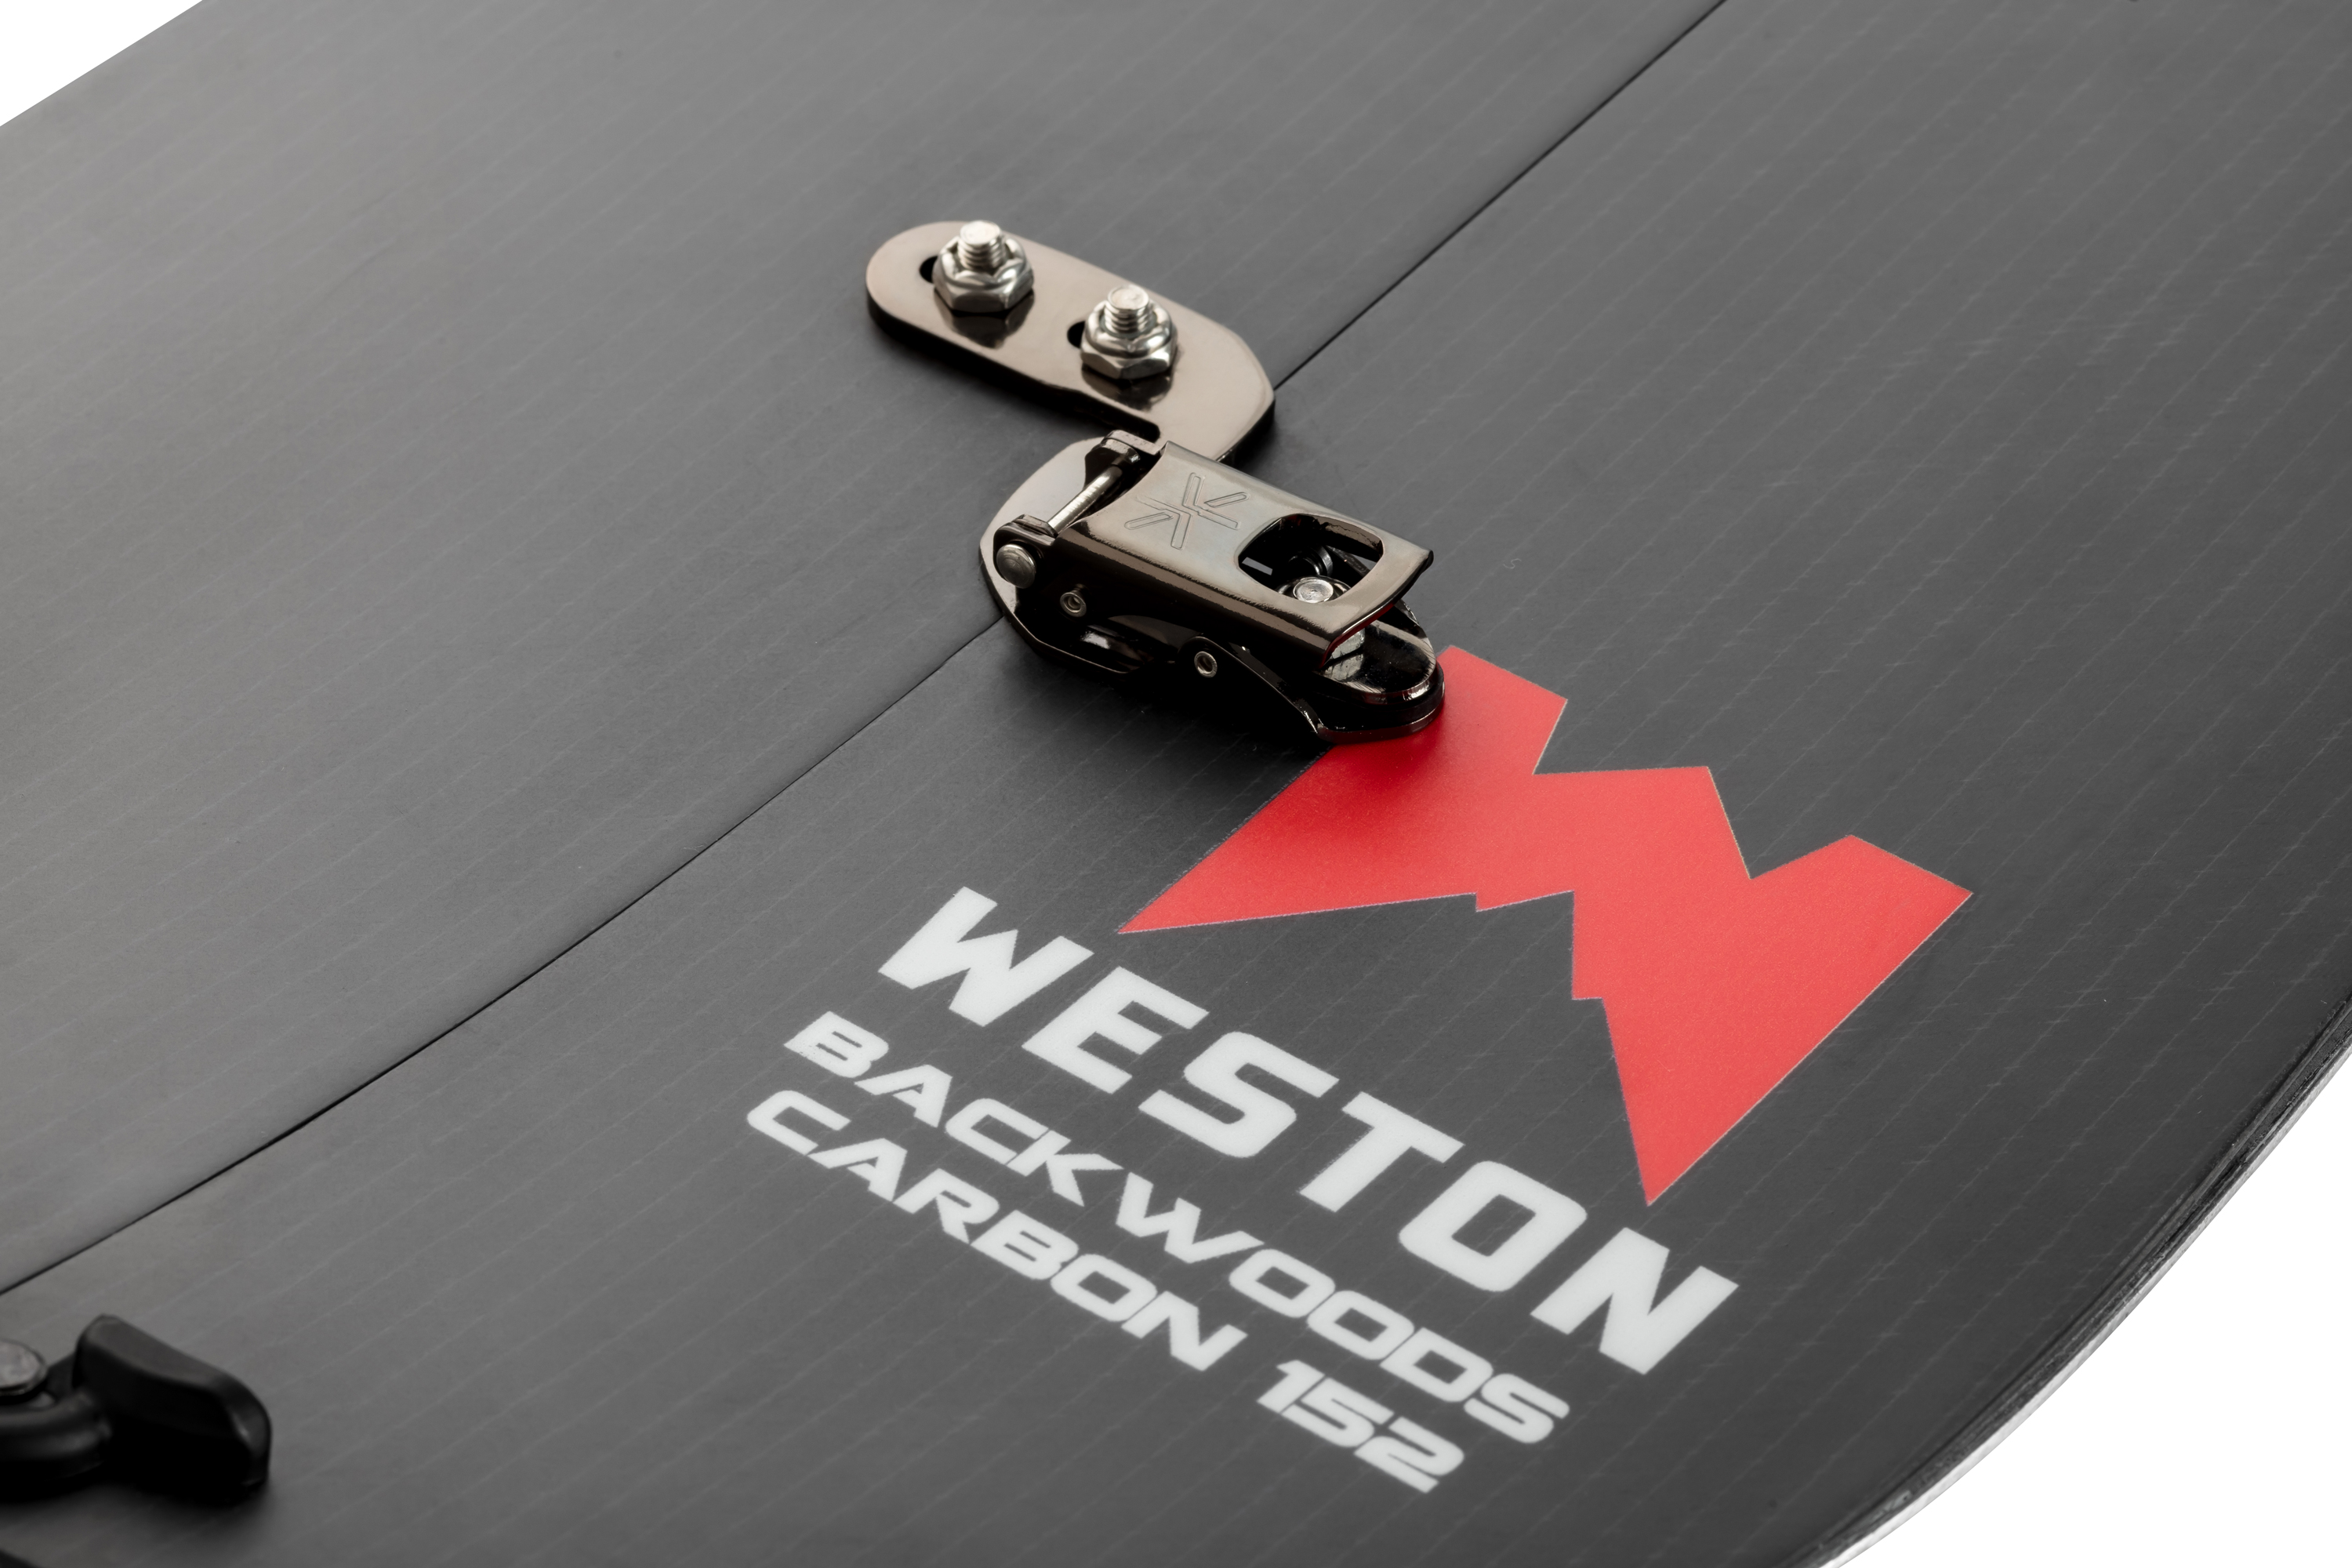 Weston Carbon Backwoods Splitboard Review: Most Durable Carbon Board?